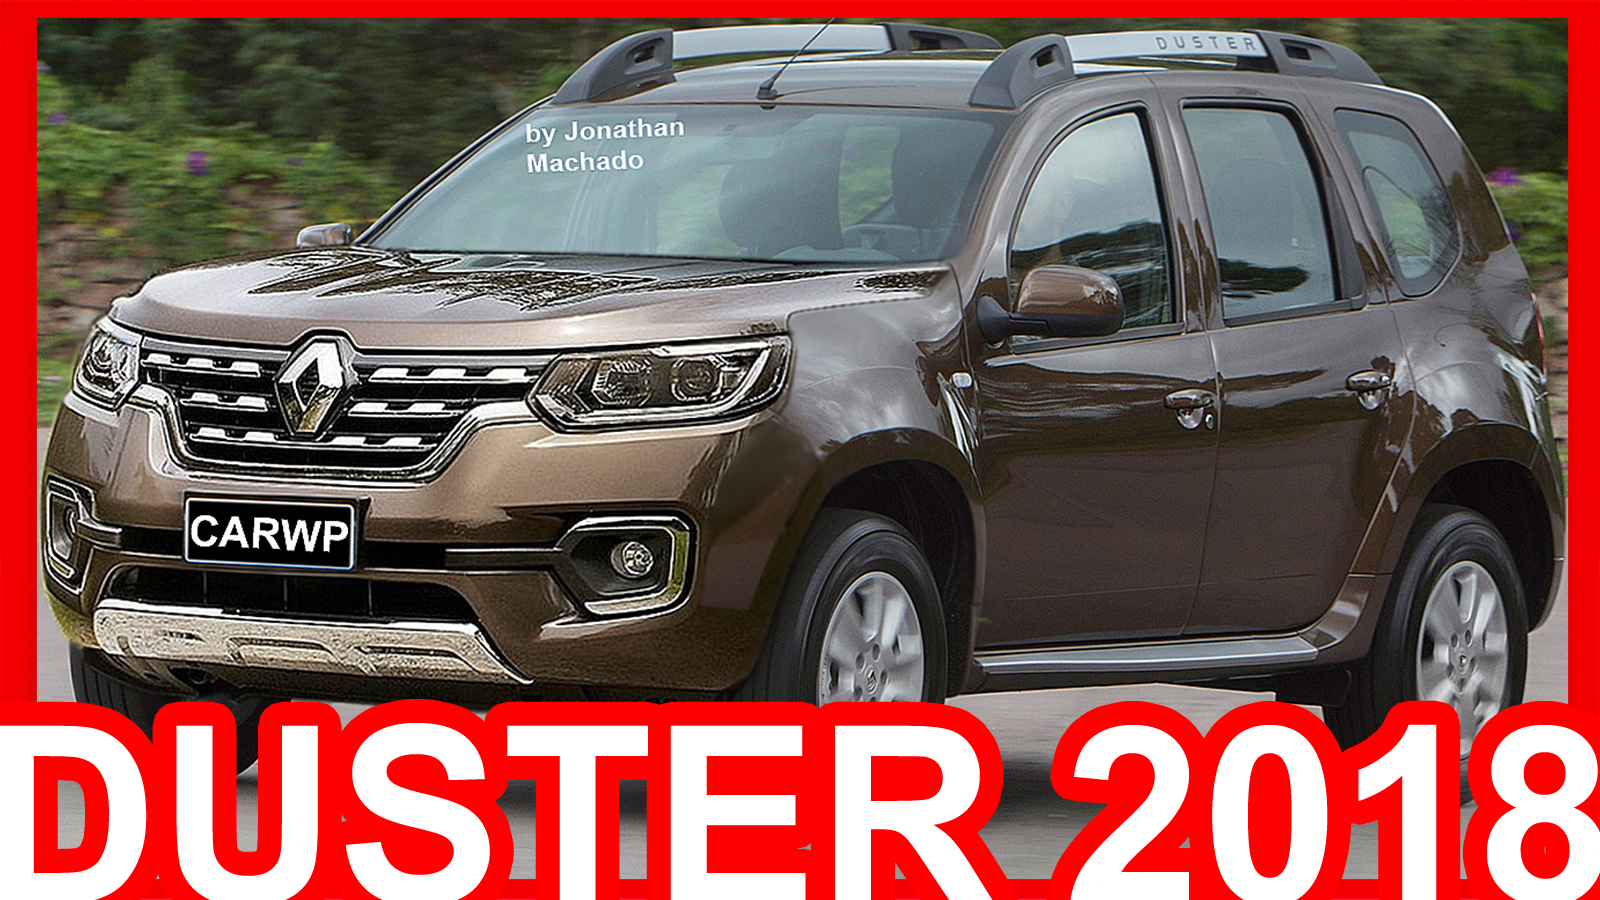 carwp jms renault duster 2018 facelift duster. Black Bedroom Furniture Sets. Home Design Ideas